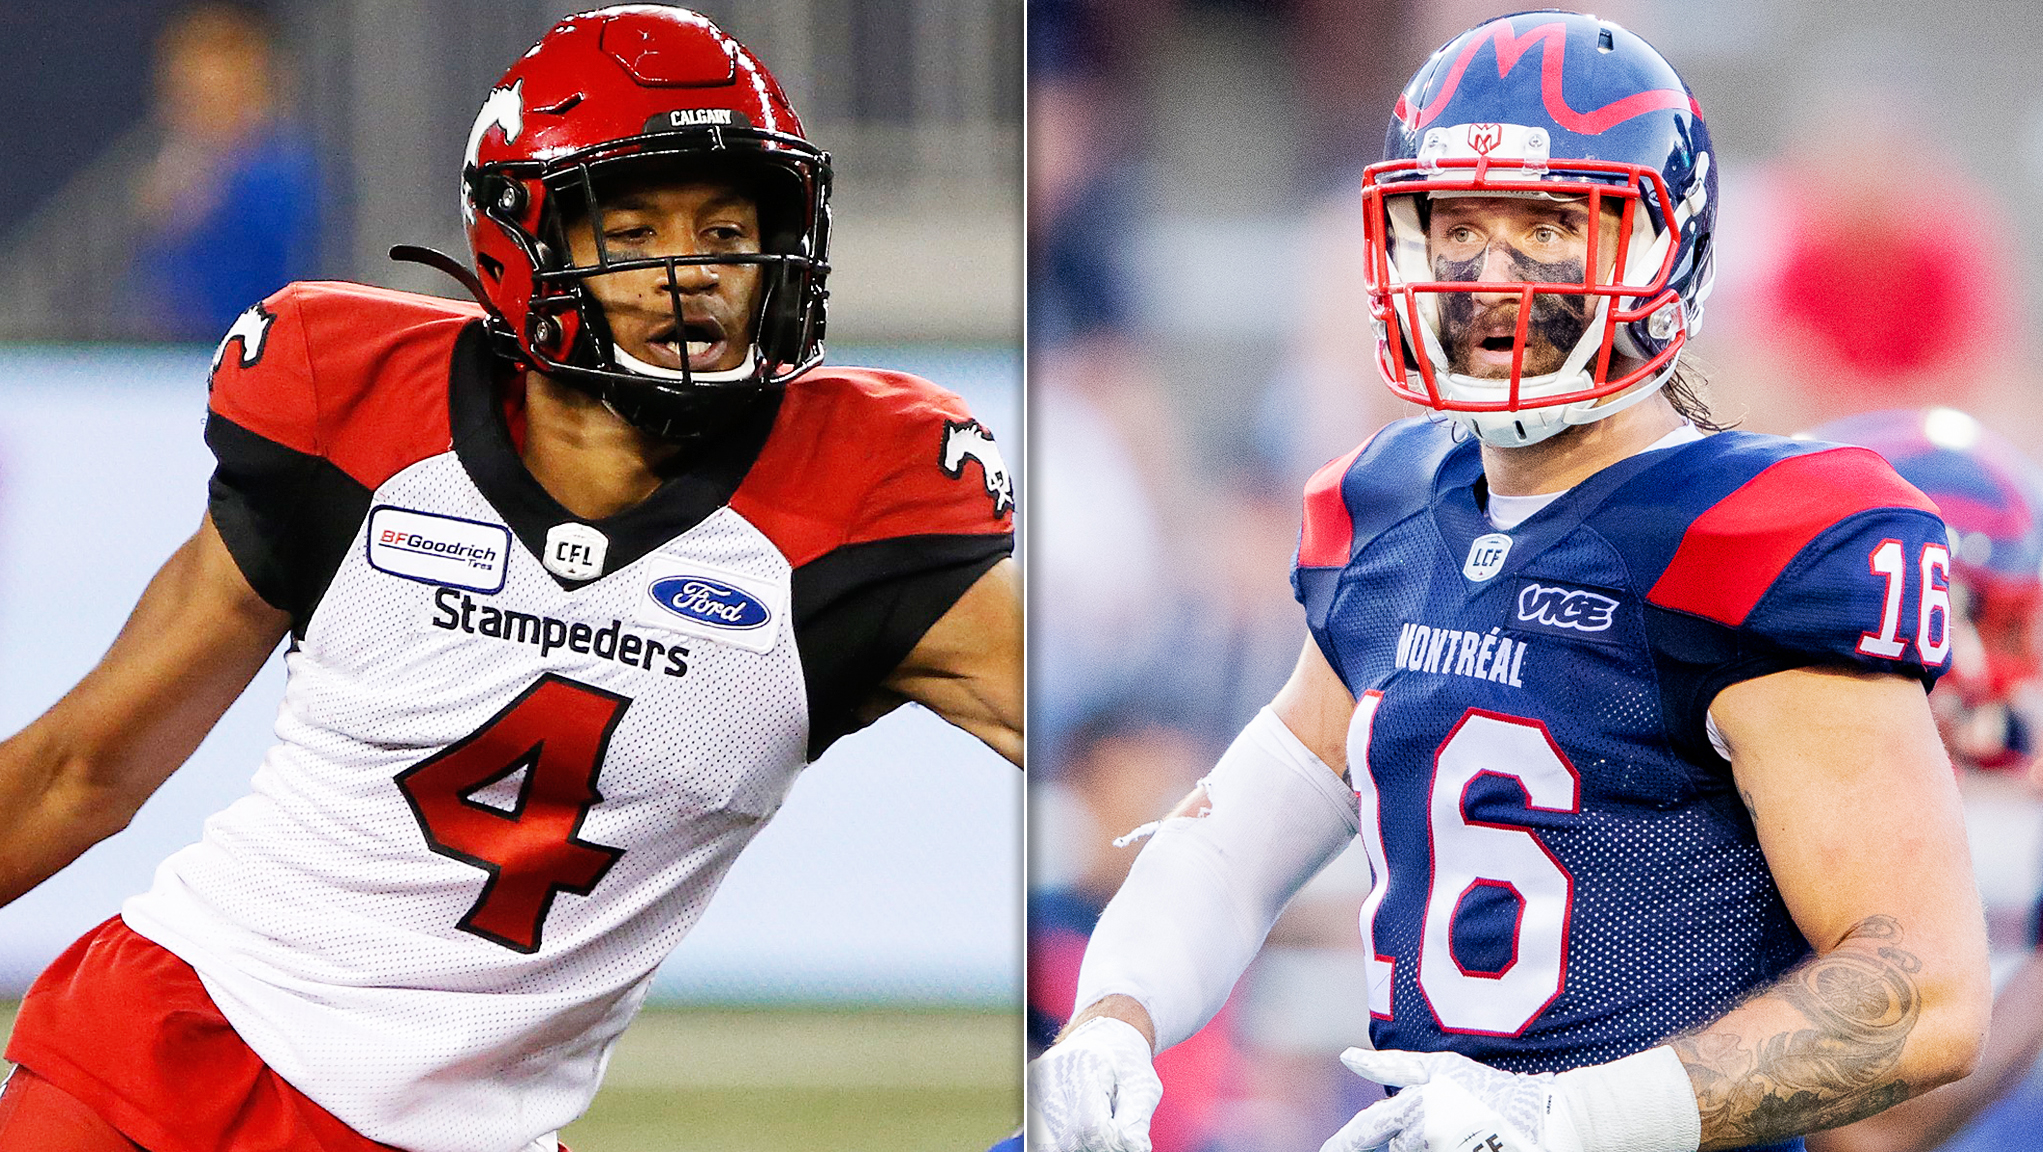 Alouettes look for elusive win at McMahon vs. Stamps - CFL.ca